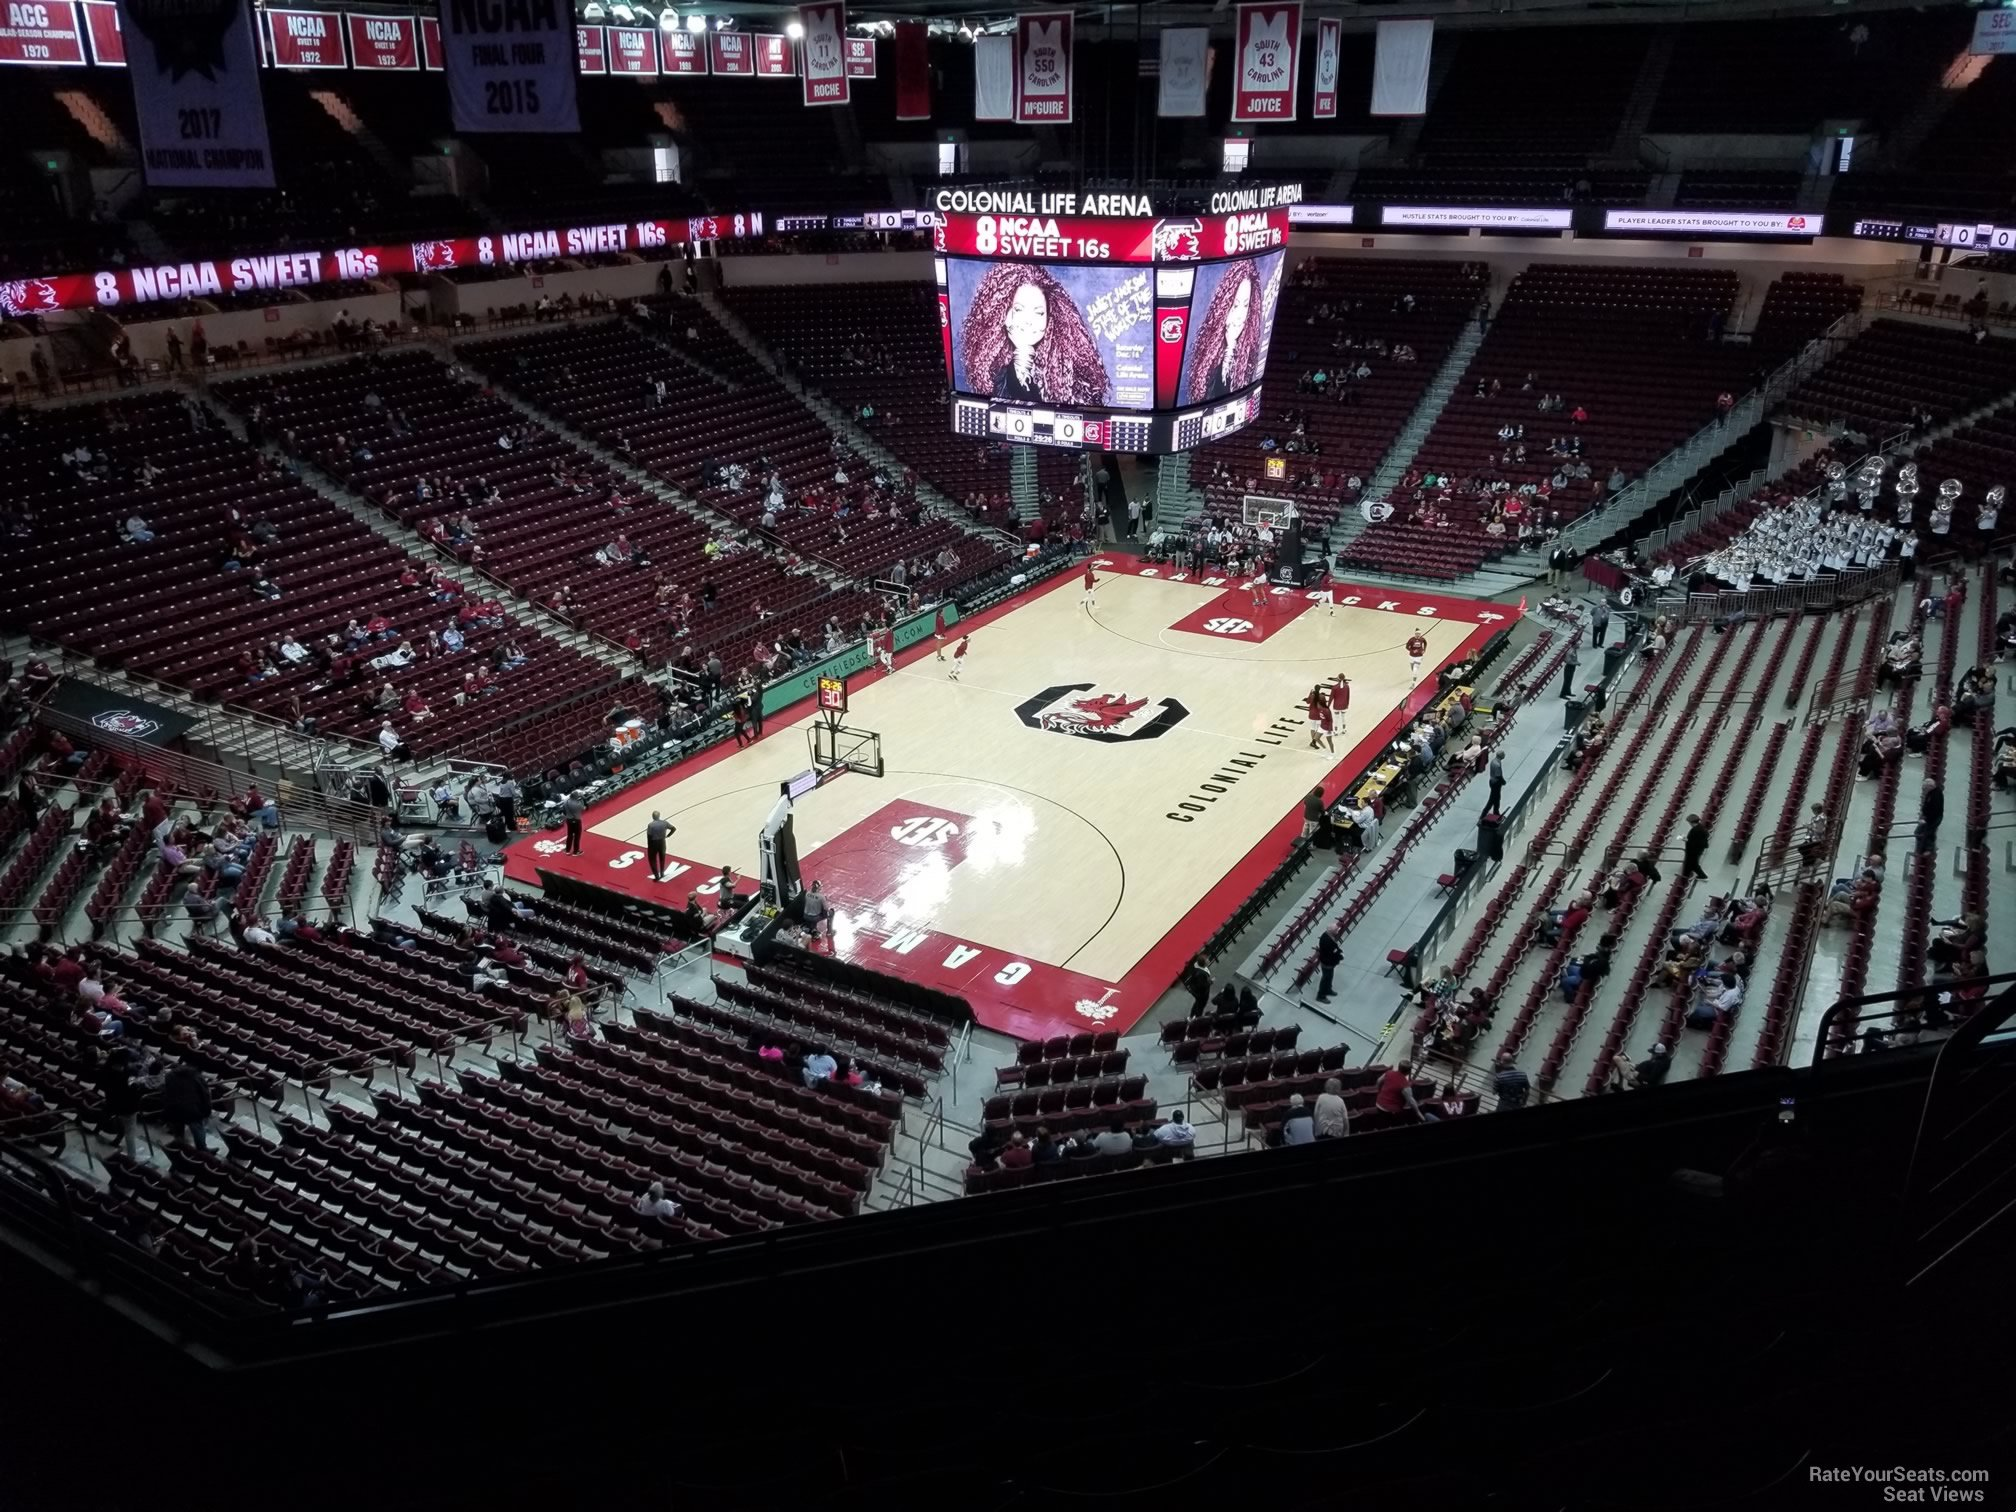 Seat View for Colonial Life Arena Section 227, Row 7